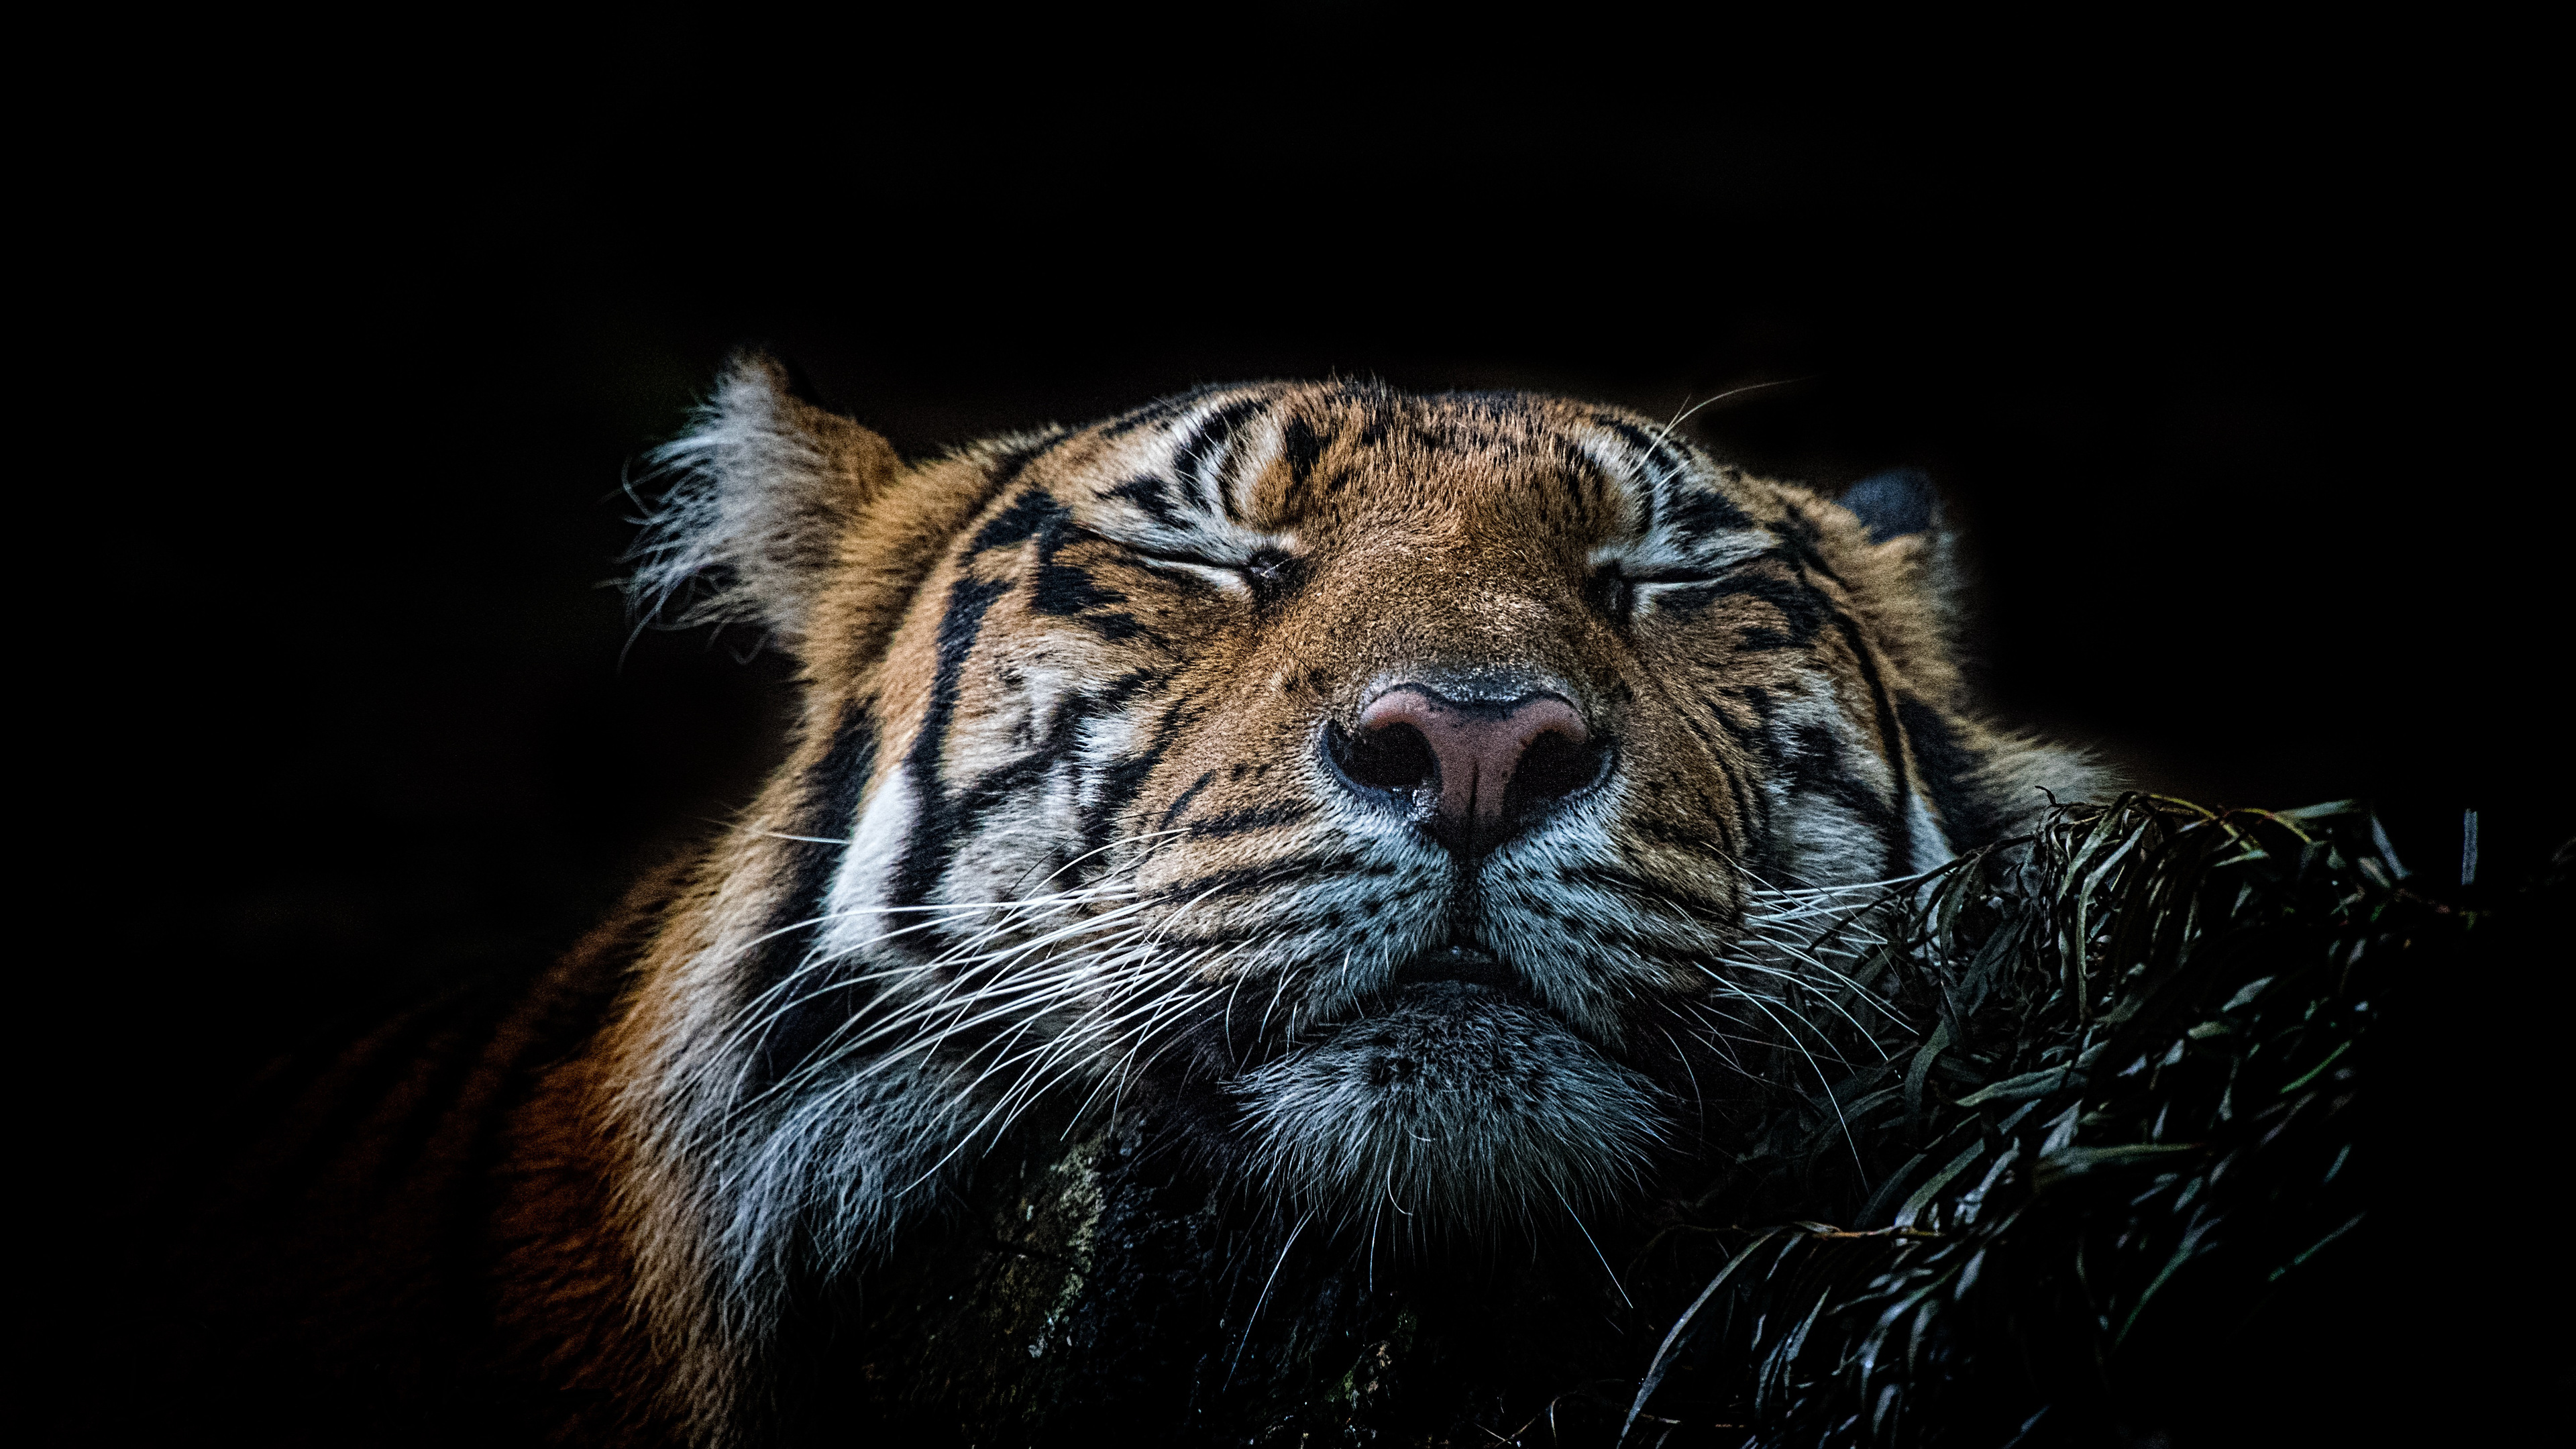 tiger 4k 1542238284 - Tiger 4k - wild wallpapers, tiger wallpapers, photography wallpapers, hd-wallpapers, animals wallpapers, 5k wallpapers, 4k-wallpapers